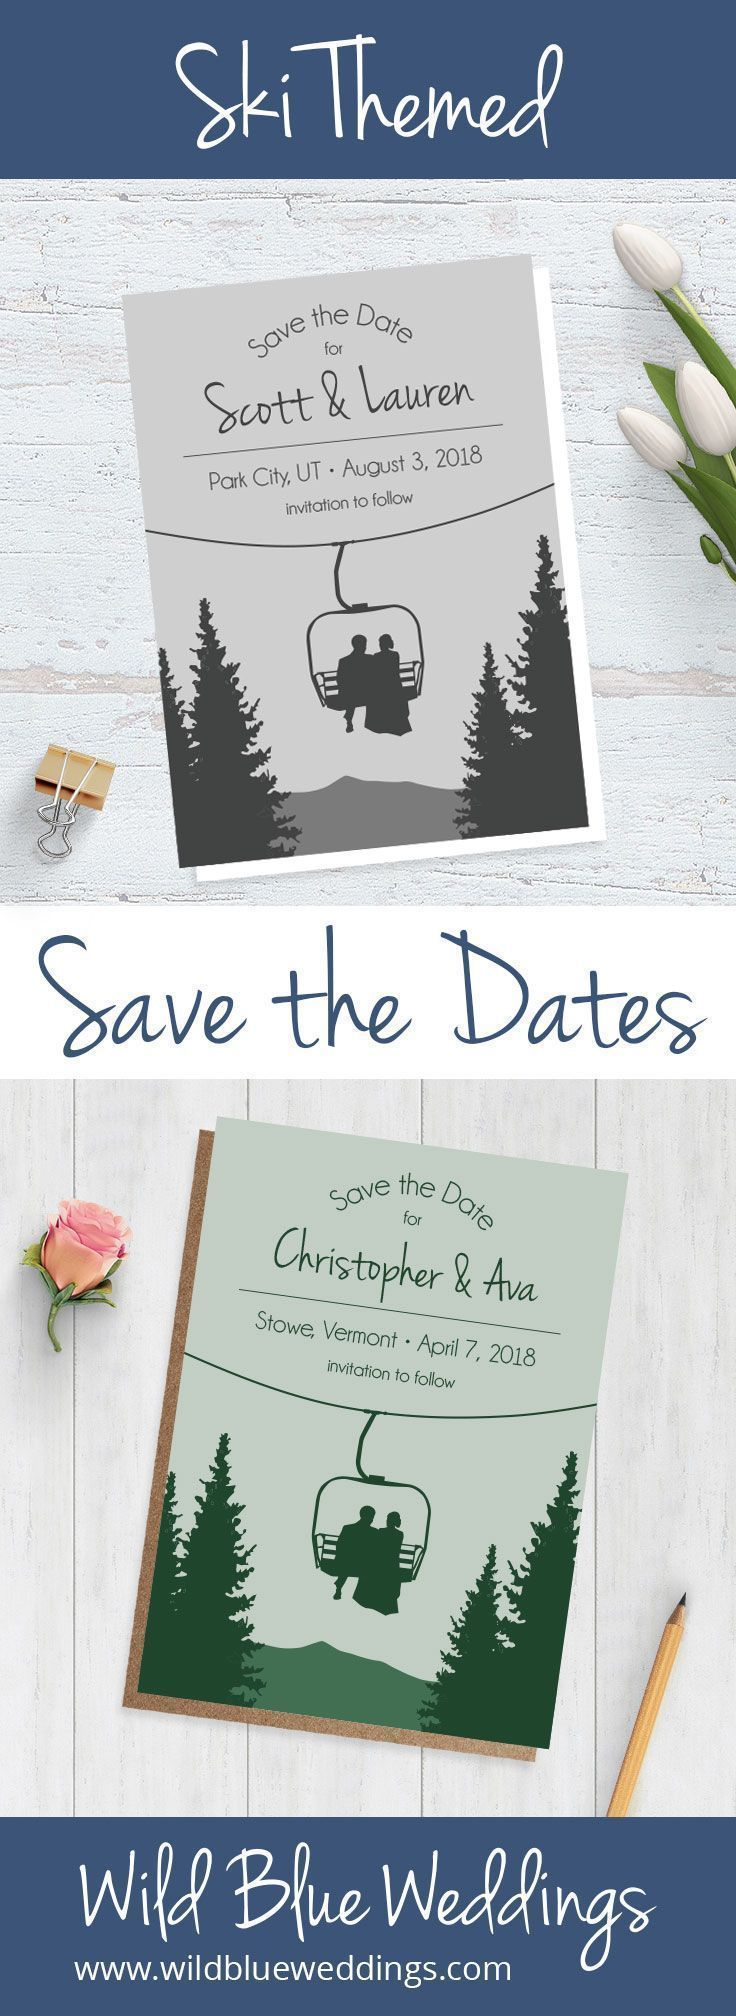 Chair Lift Save the Date